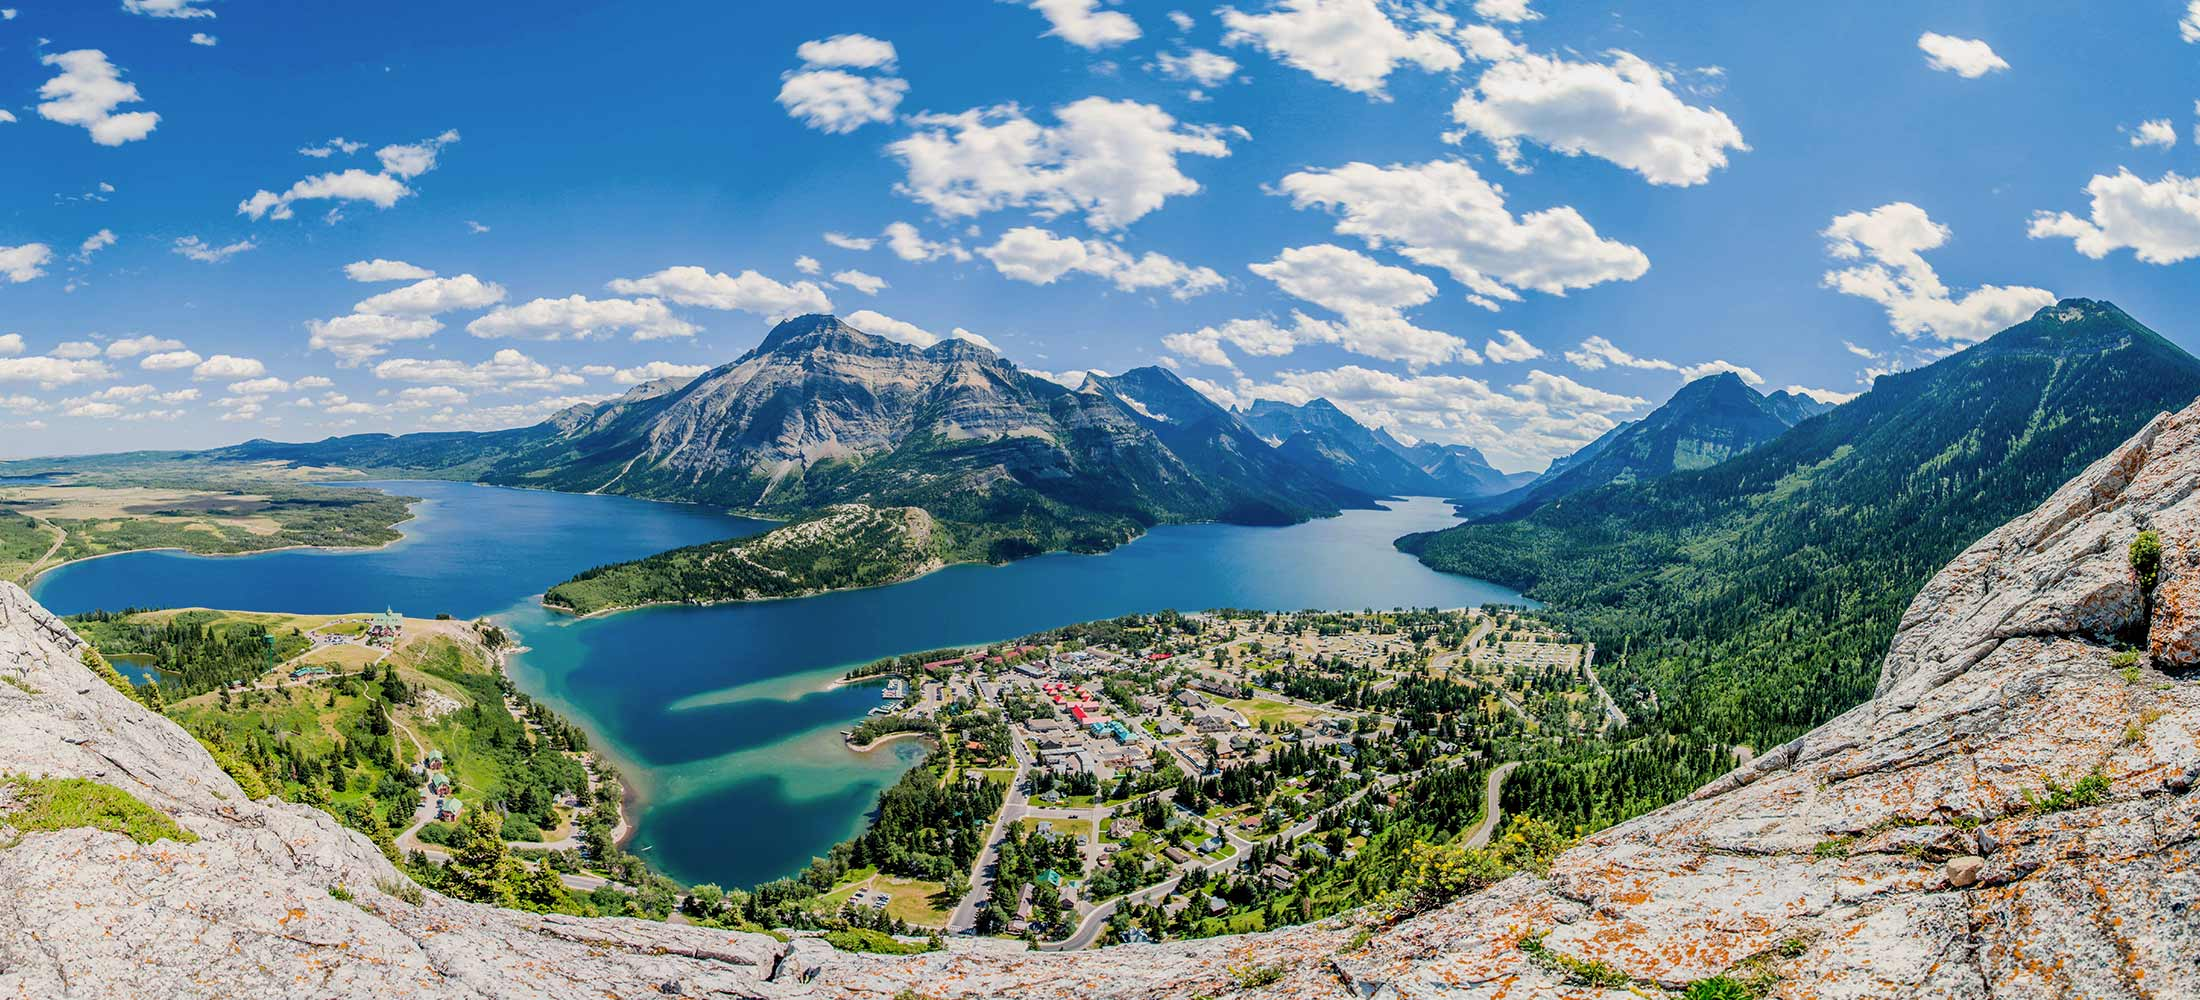 The Waterton townsite from Bears Hump in Waterton National Park, Alberta